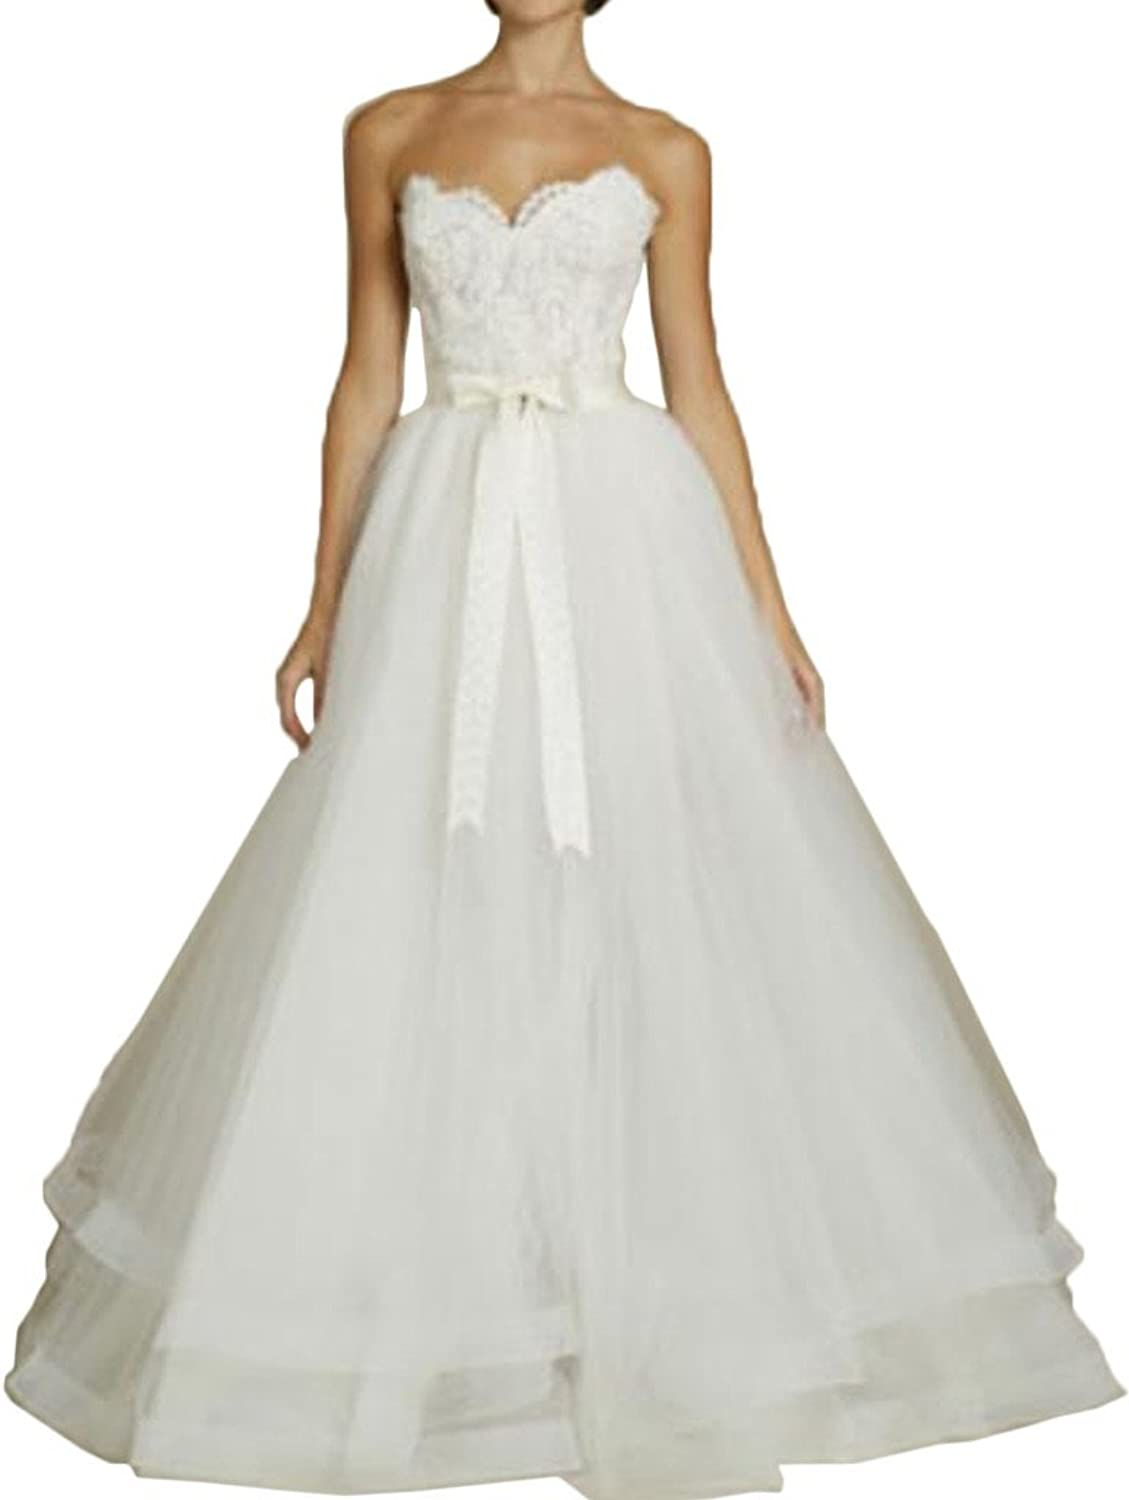 MILANO BRIDE Unique Wedding Dress For Bride Strapless Detachable Train Sash